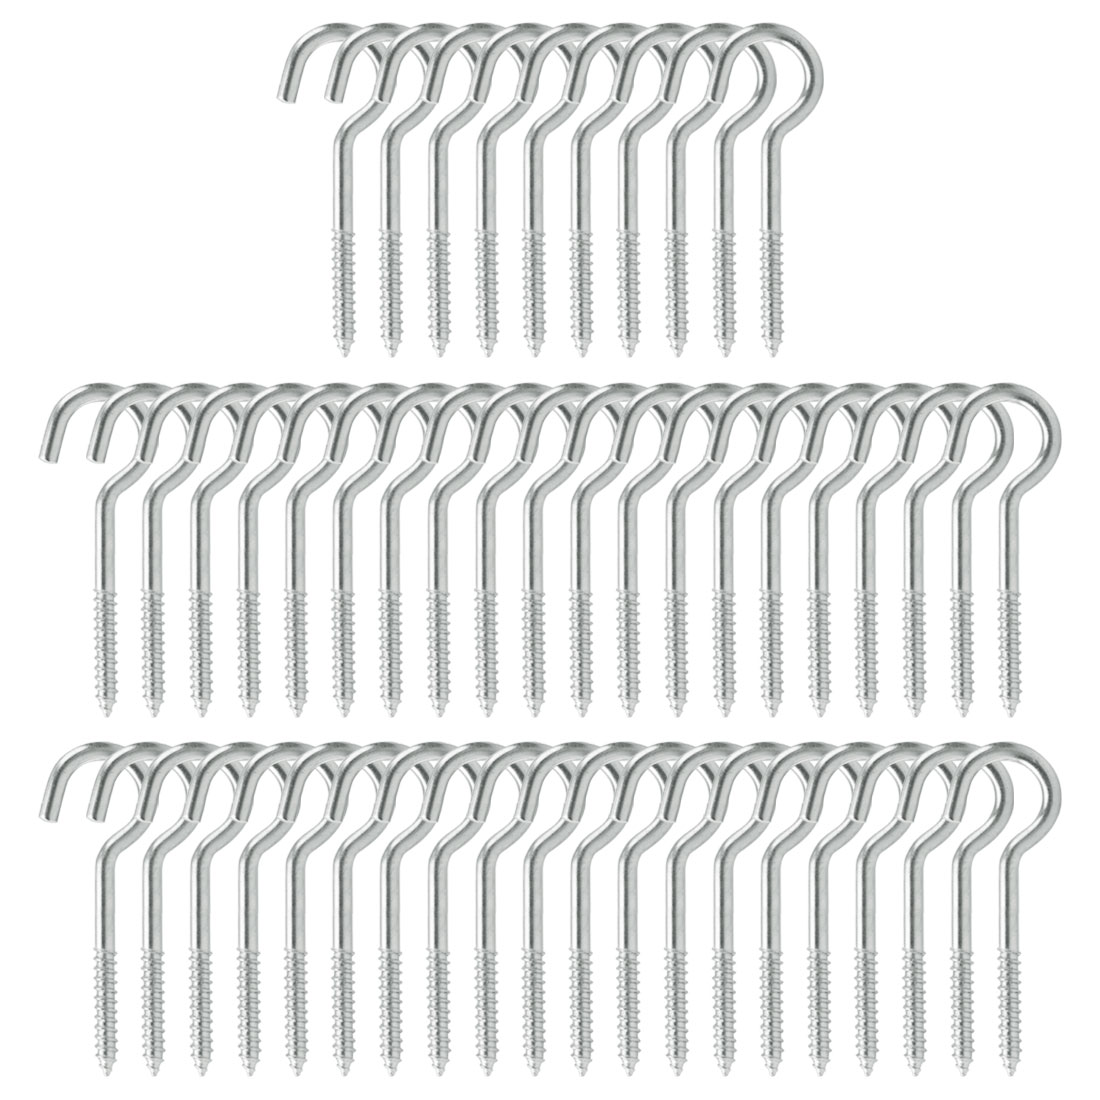 50pcs Cup Ceiling Hooks 1 Inch Durable Metal Screw in Hanger Hook Silver White